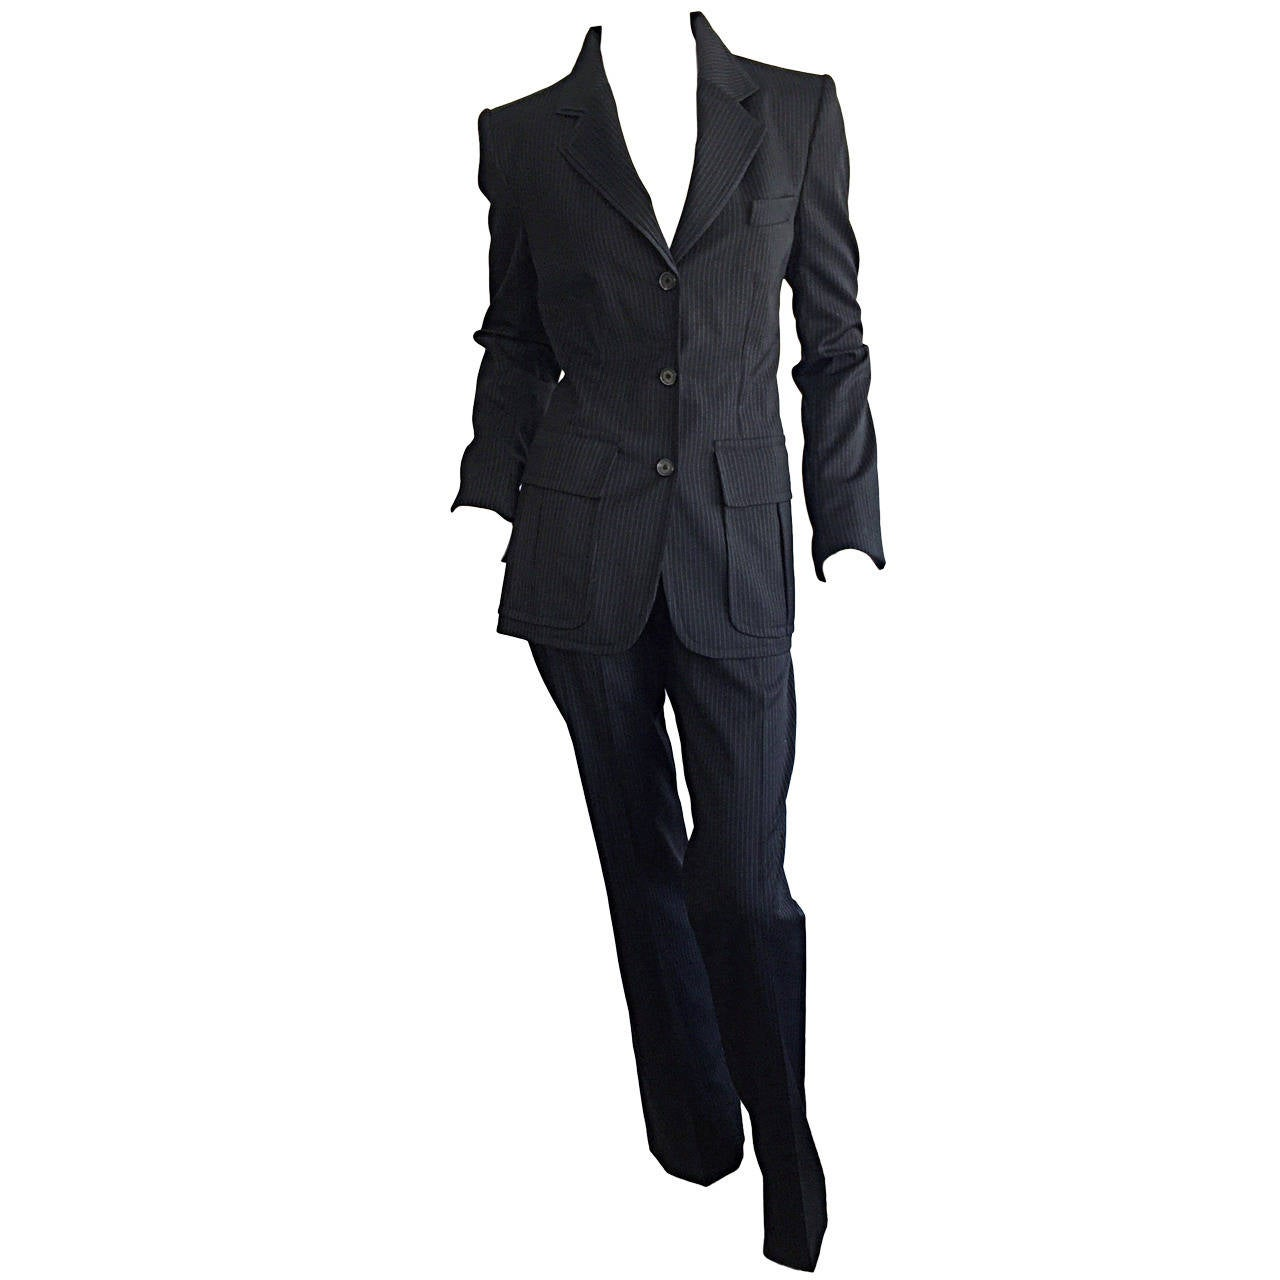 Tom Ford for Yves Saint Laurent Black + White Pinstripe Le Smoking Trouser Suit For Sale